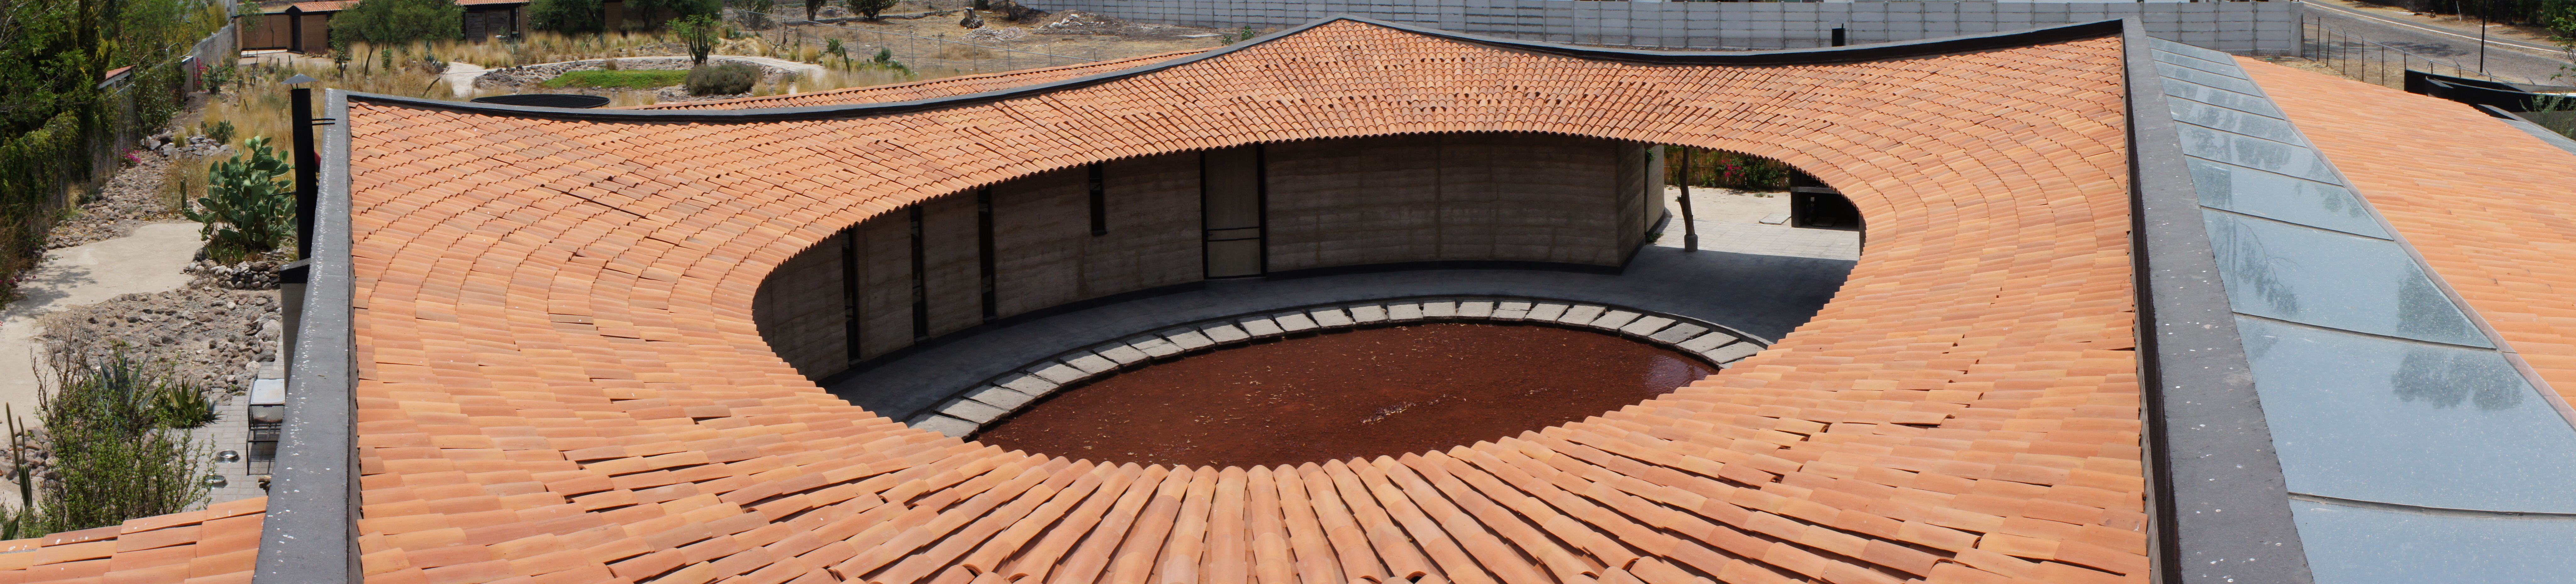 Patio Central. Rammed Earth / Tapial